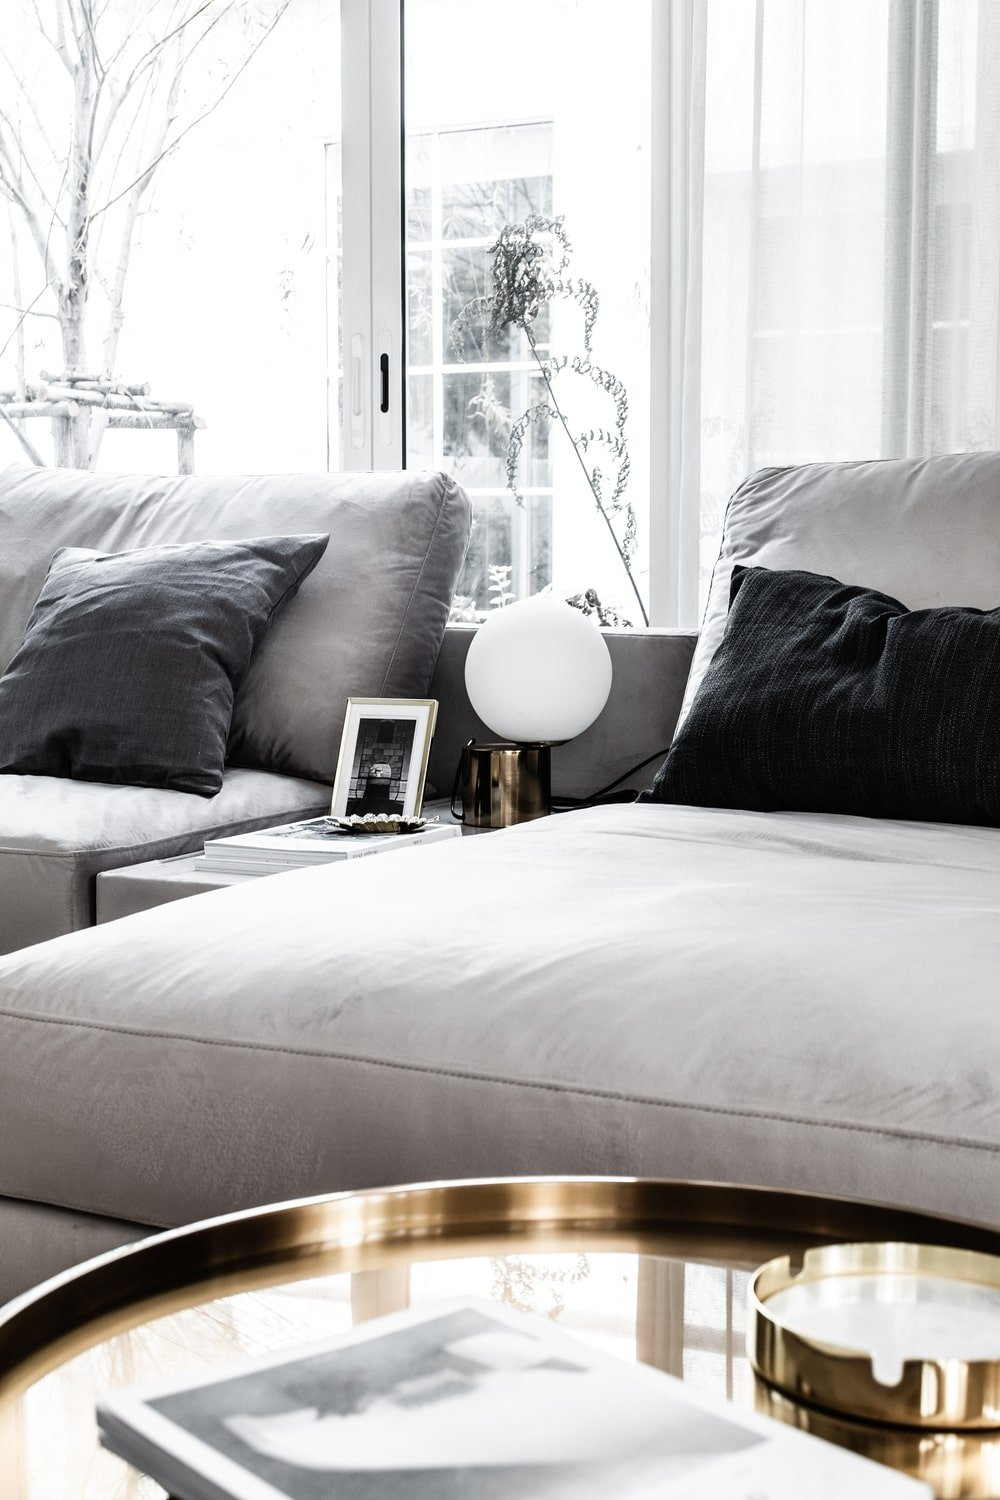 The gray tones of the sofa and its throw pillows give a nice contrast to the golden metallic round side table.